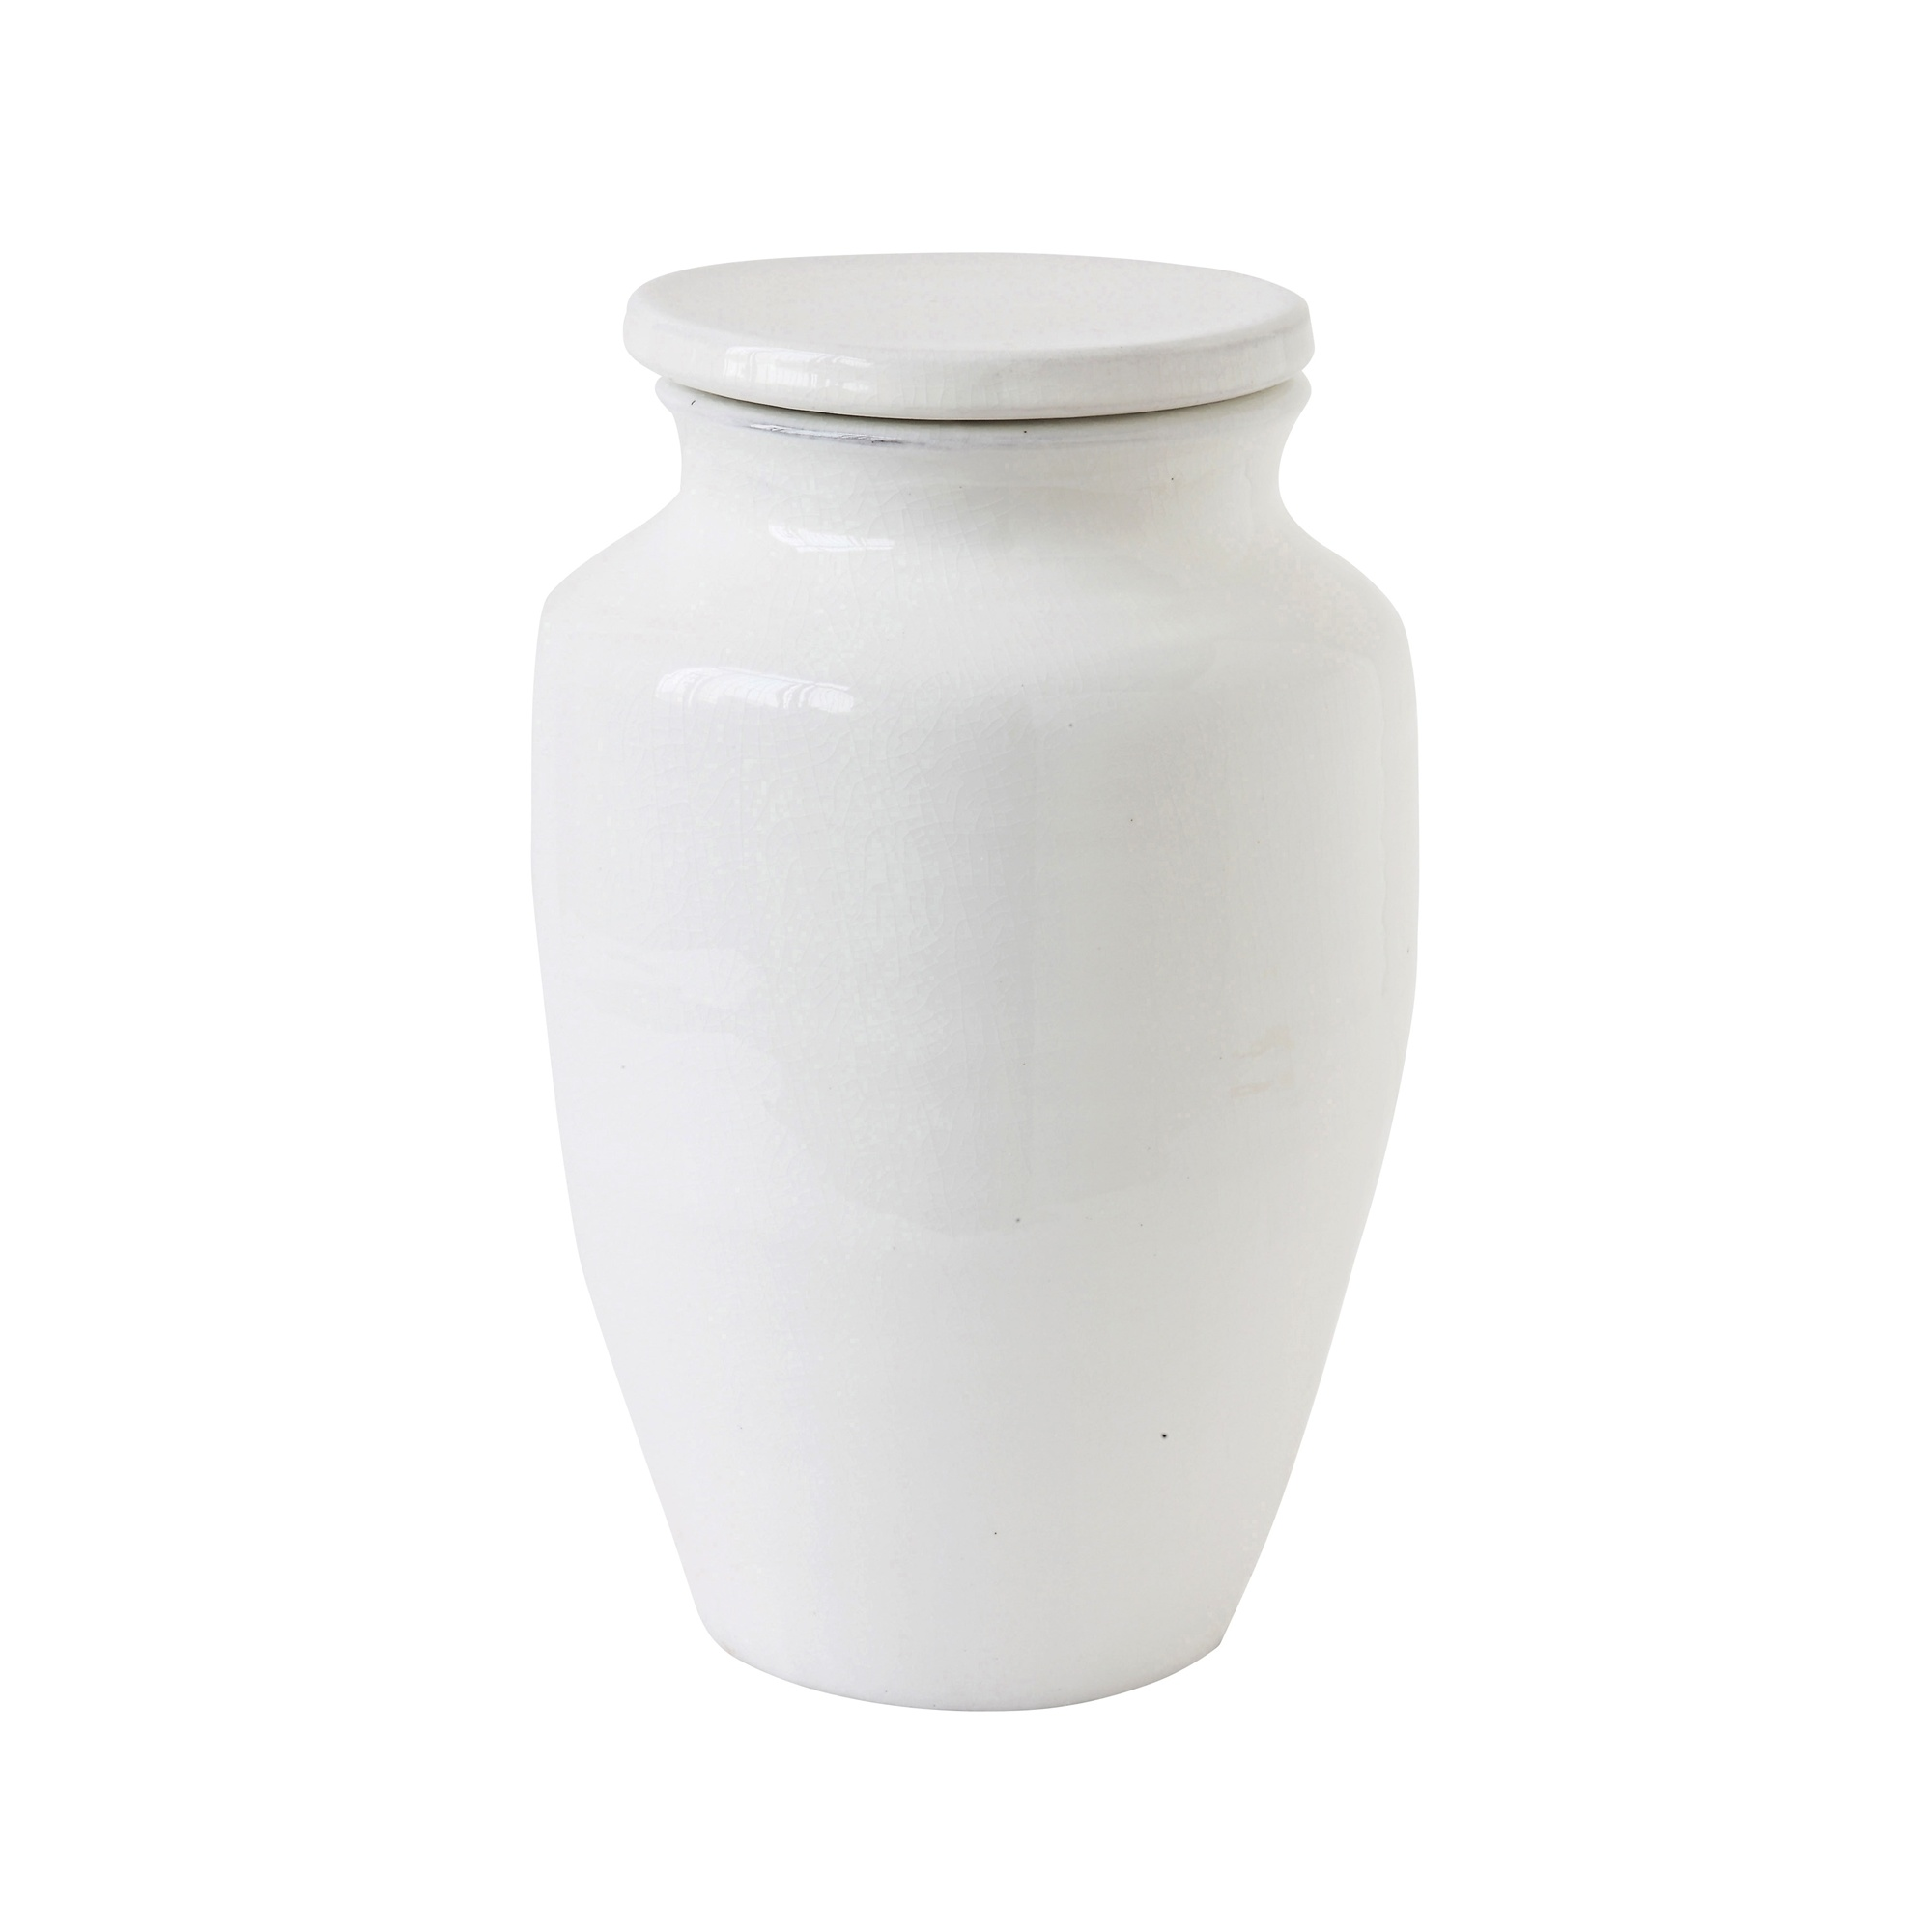 Bloomingville Deco Jar with Lid, terracotta - Ø18xH30cm - white - Bloomingville